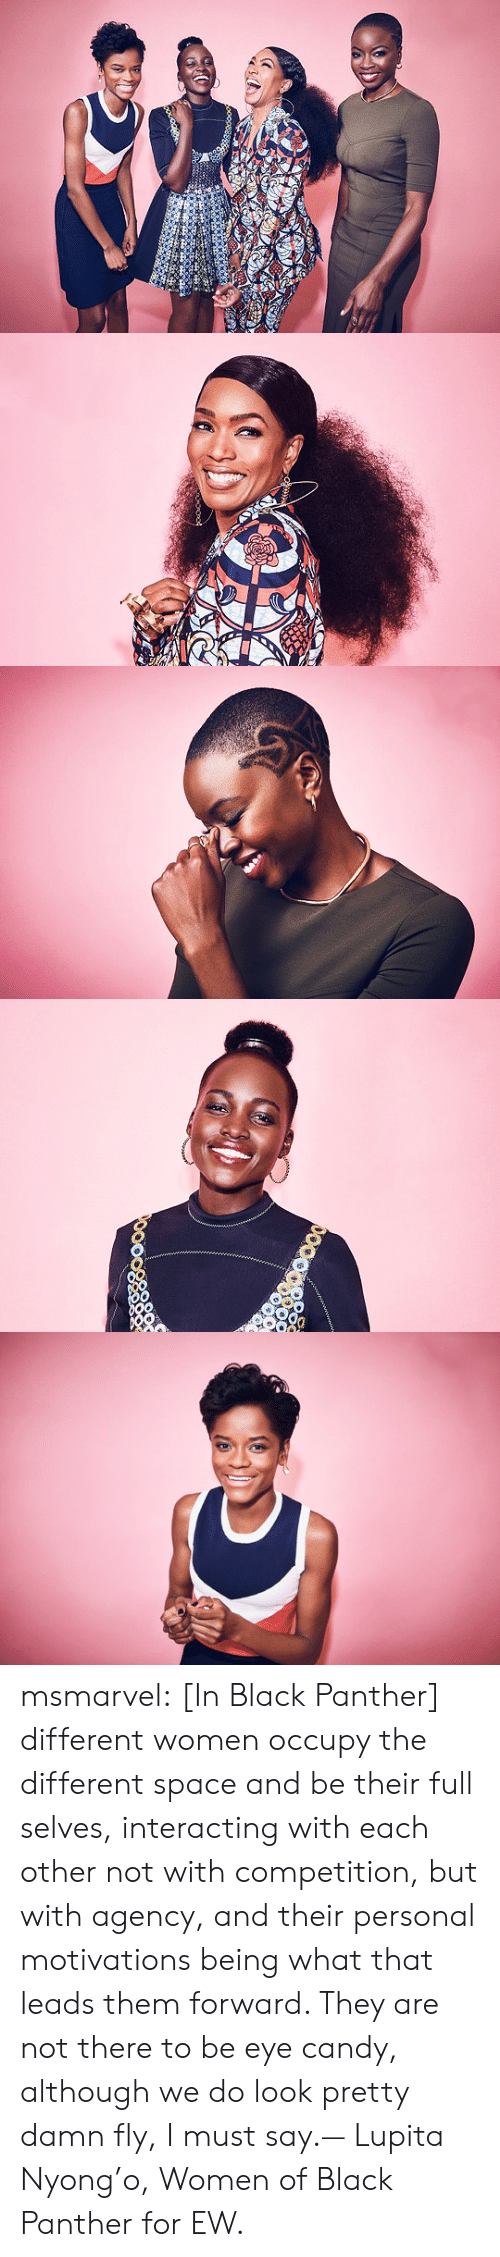 i must say: msmarvel:  [In Black Panther] different women occupy the different space and be their full selves, interacting with each other not with competition, but with agency, and their personal motivations being what that leads them forward. They are not there to be eye candy, although we do look pretty damn fly, I must say.— Lupita Nyong'o,Women of Black Panther for EW.